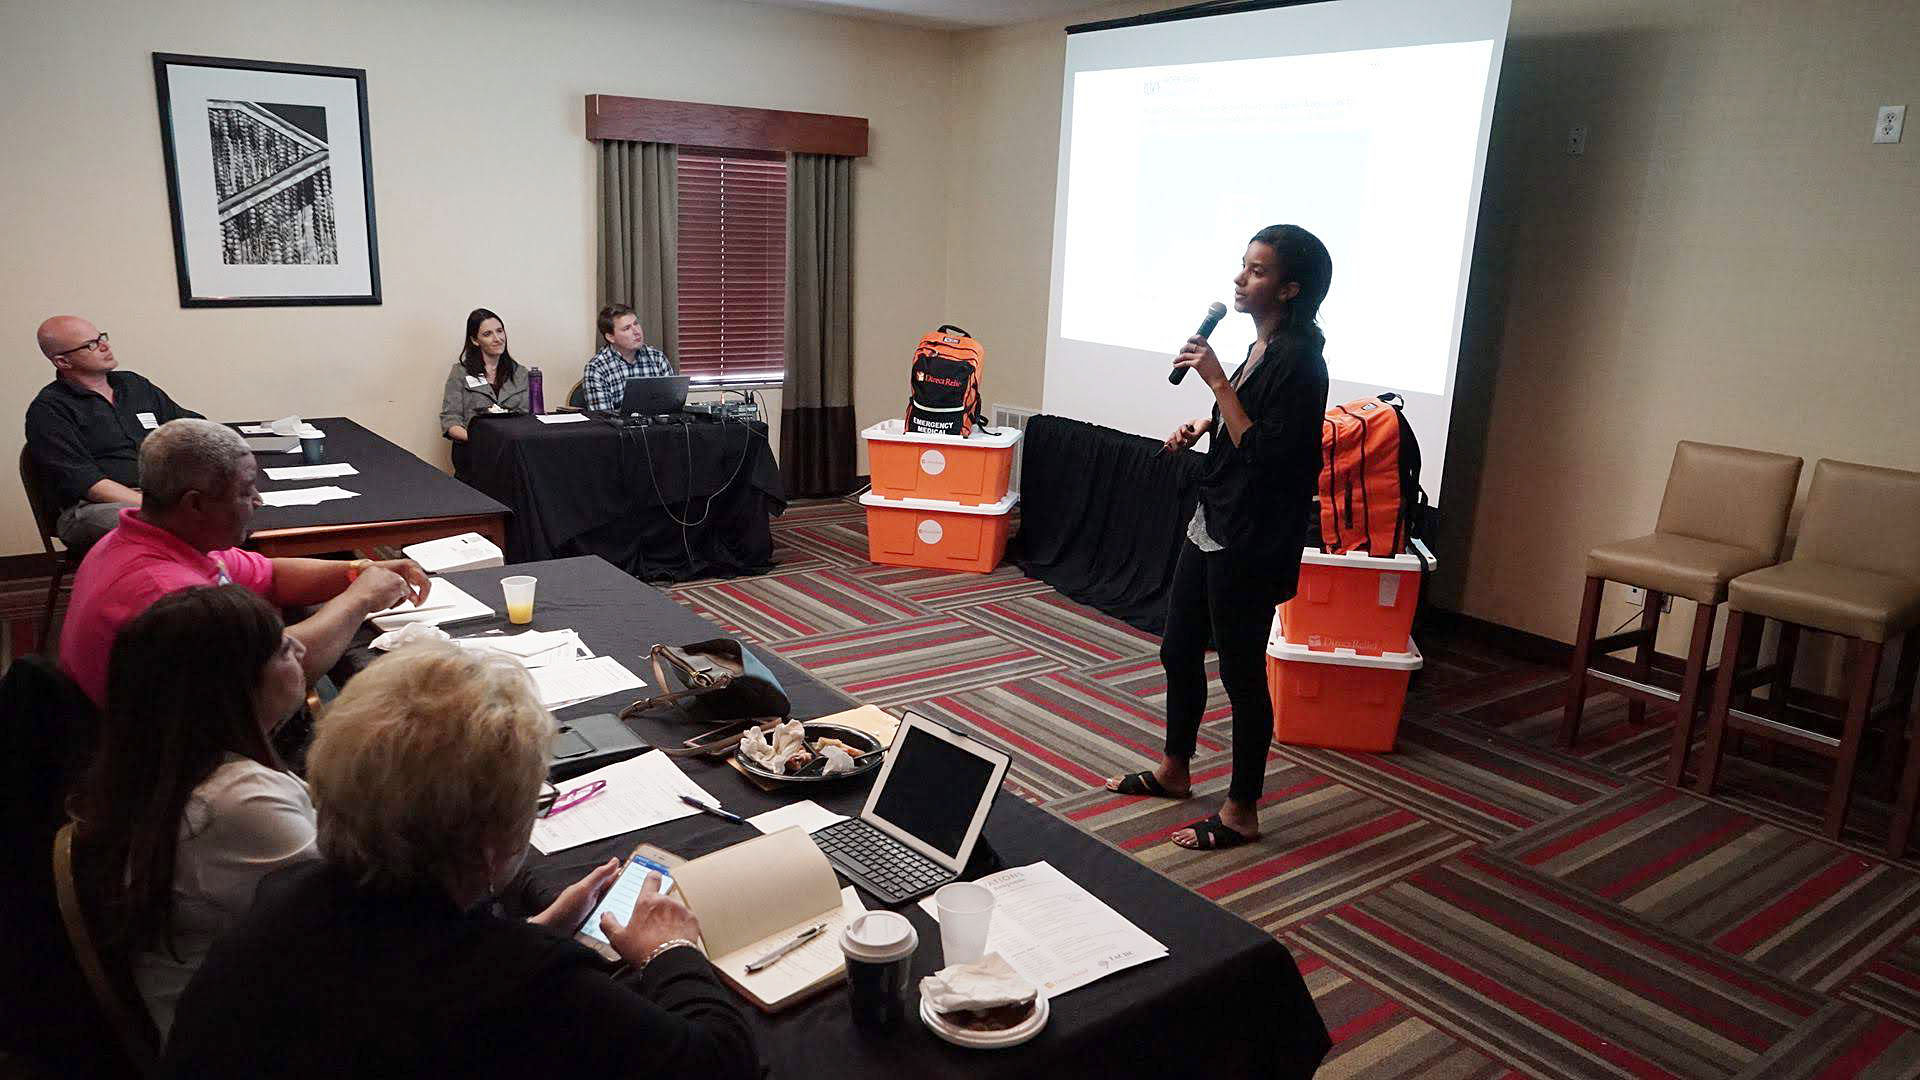 Direct Relief's Bryn Blanks leads a session during Direct Relief's crisis communications workshop in Houston in May 2018. (Lara Cooper/Direct Relief)